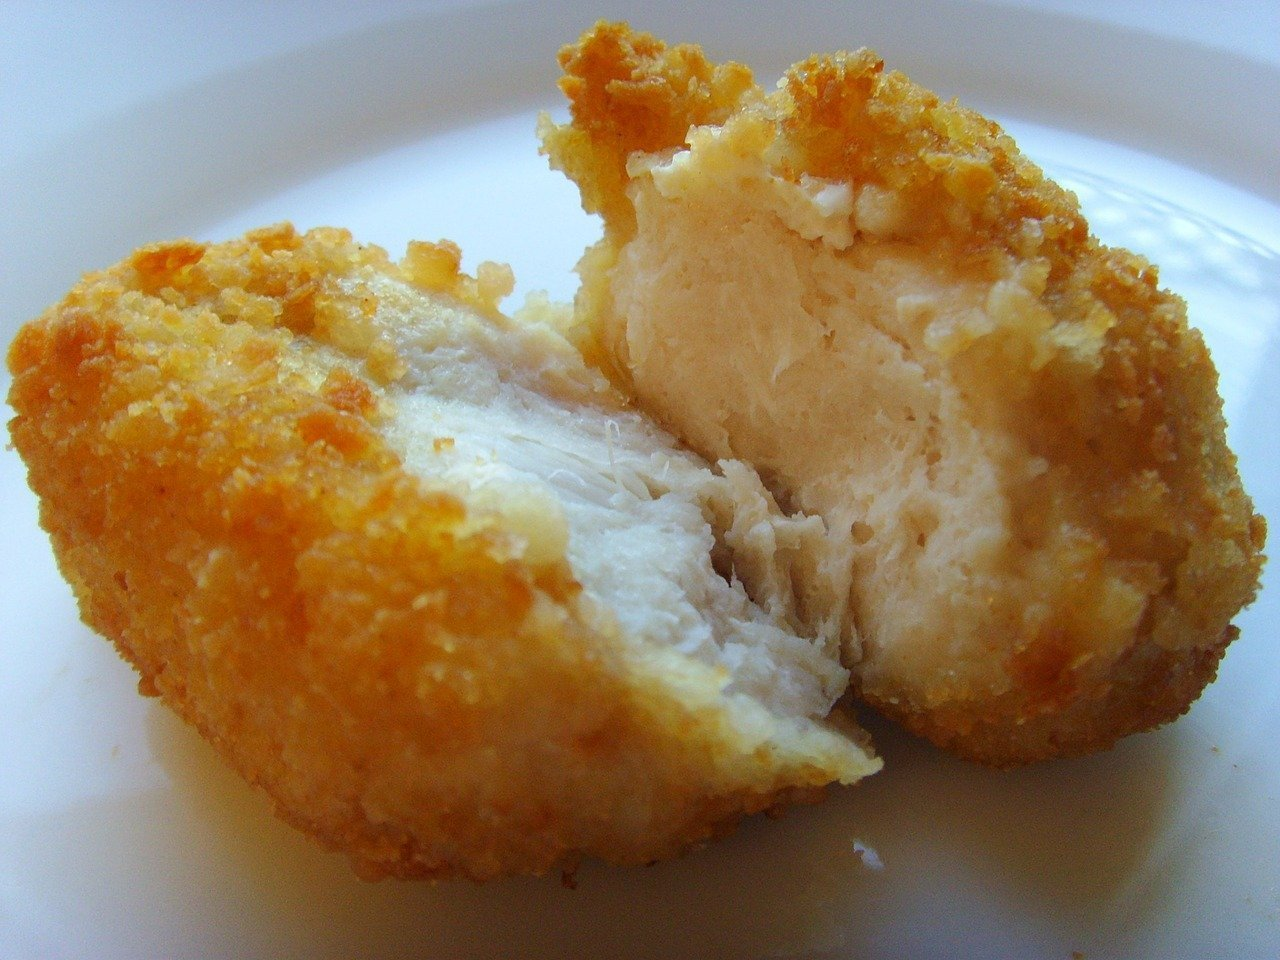 A batch of chicken nuggets. Image credit: Pixabay